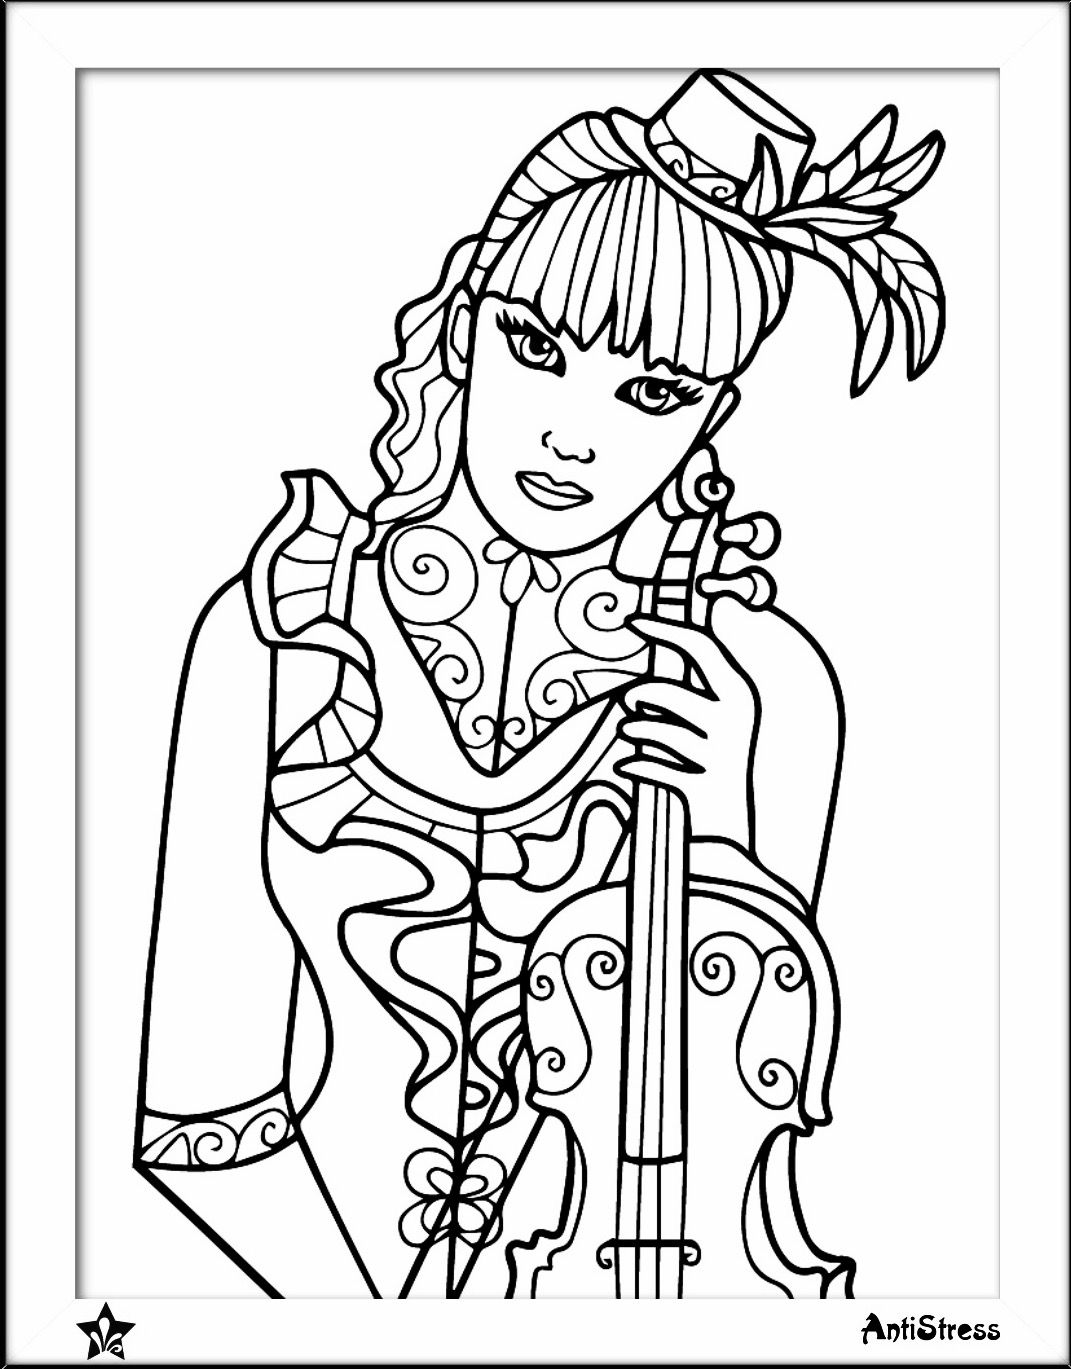 Girl With Violin Coloring Page Adult Coloring Pages Coloring